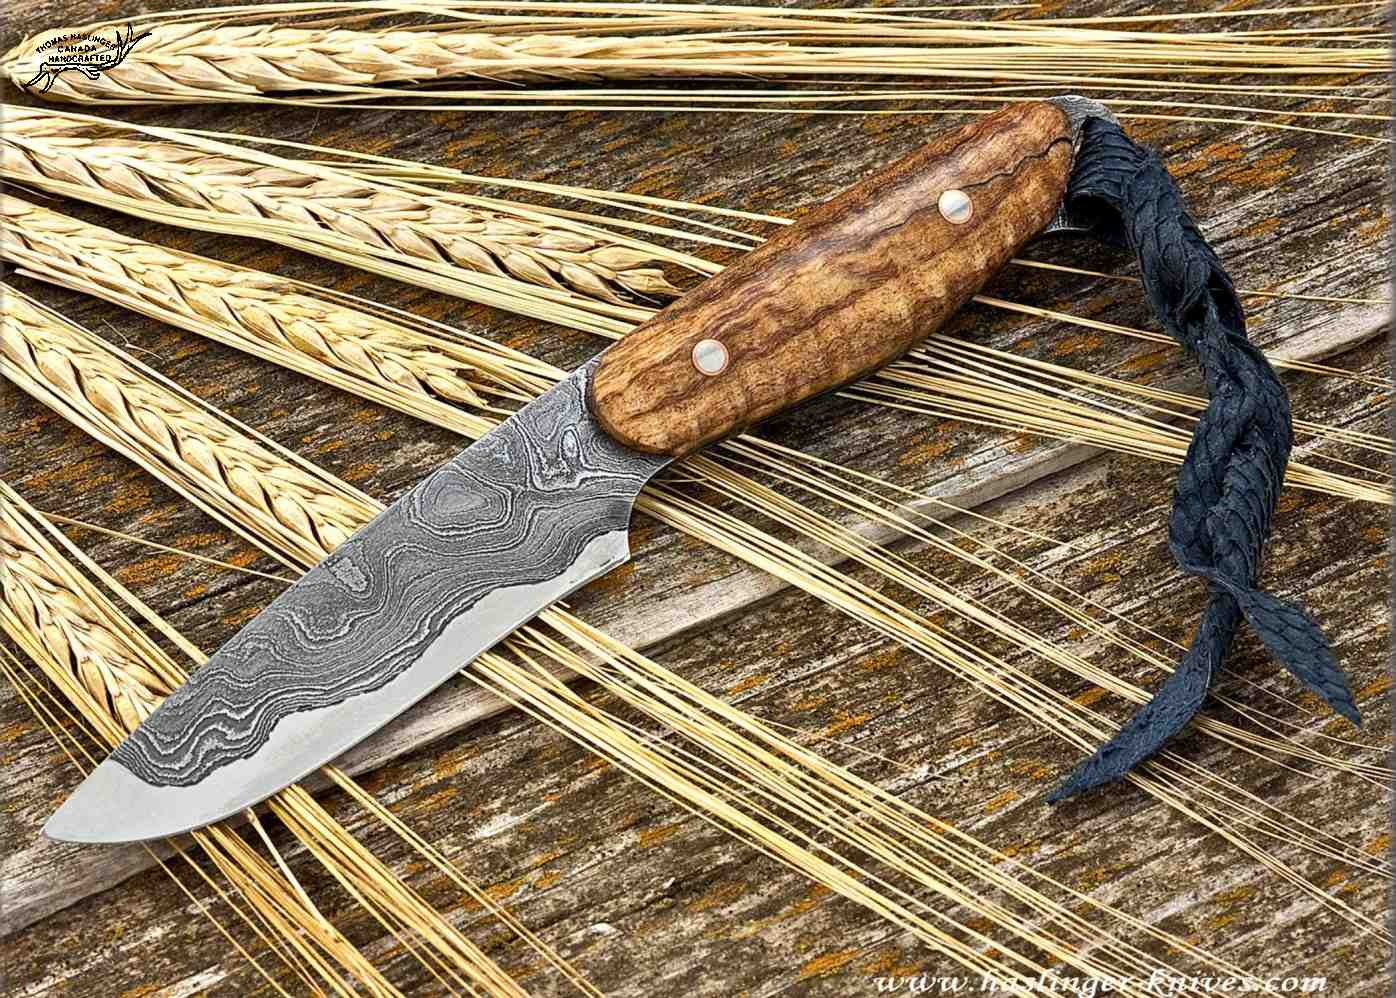 Kernmantel Damascus Bird And Trout Knife Haslinger Knives